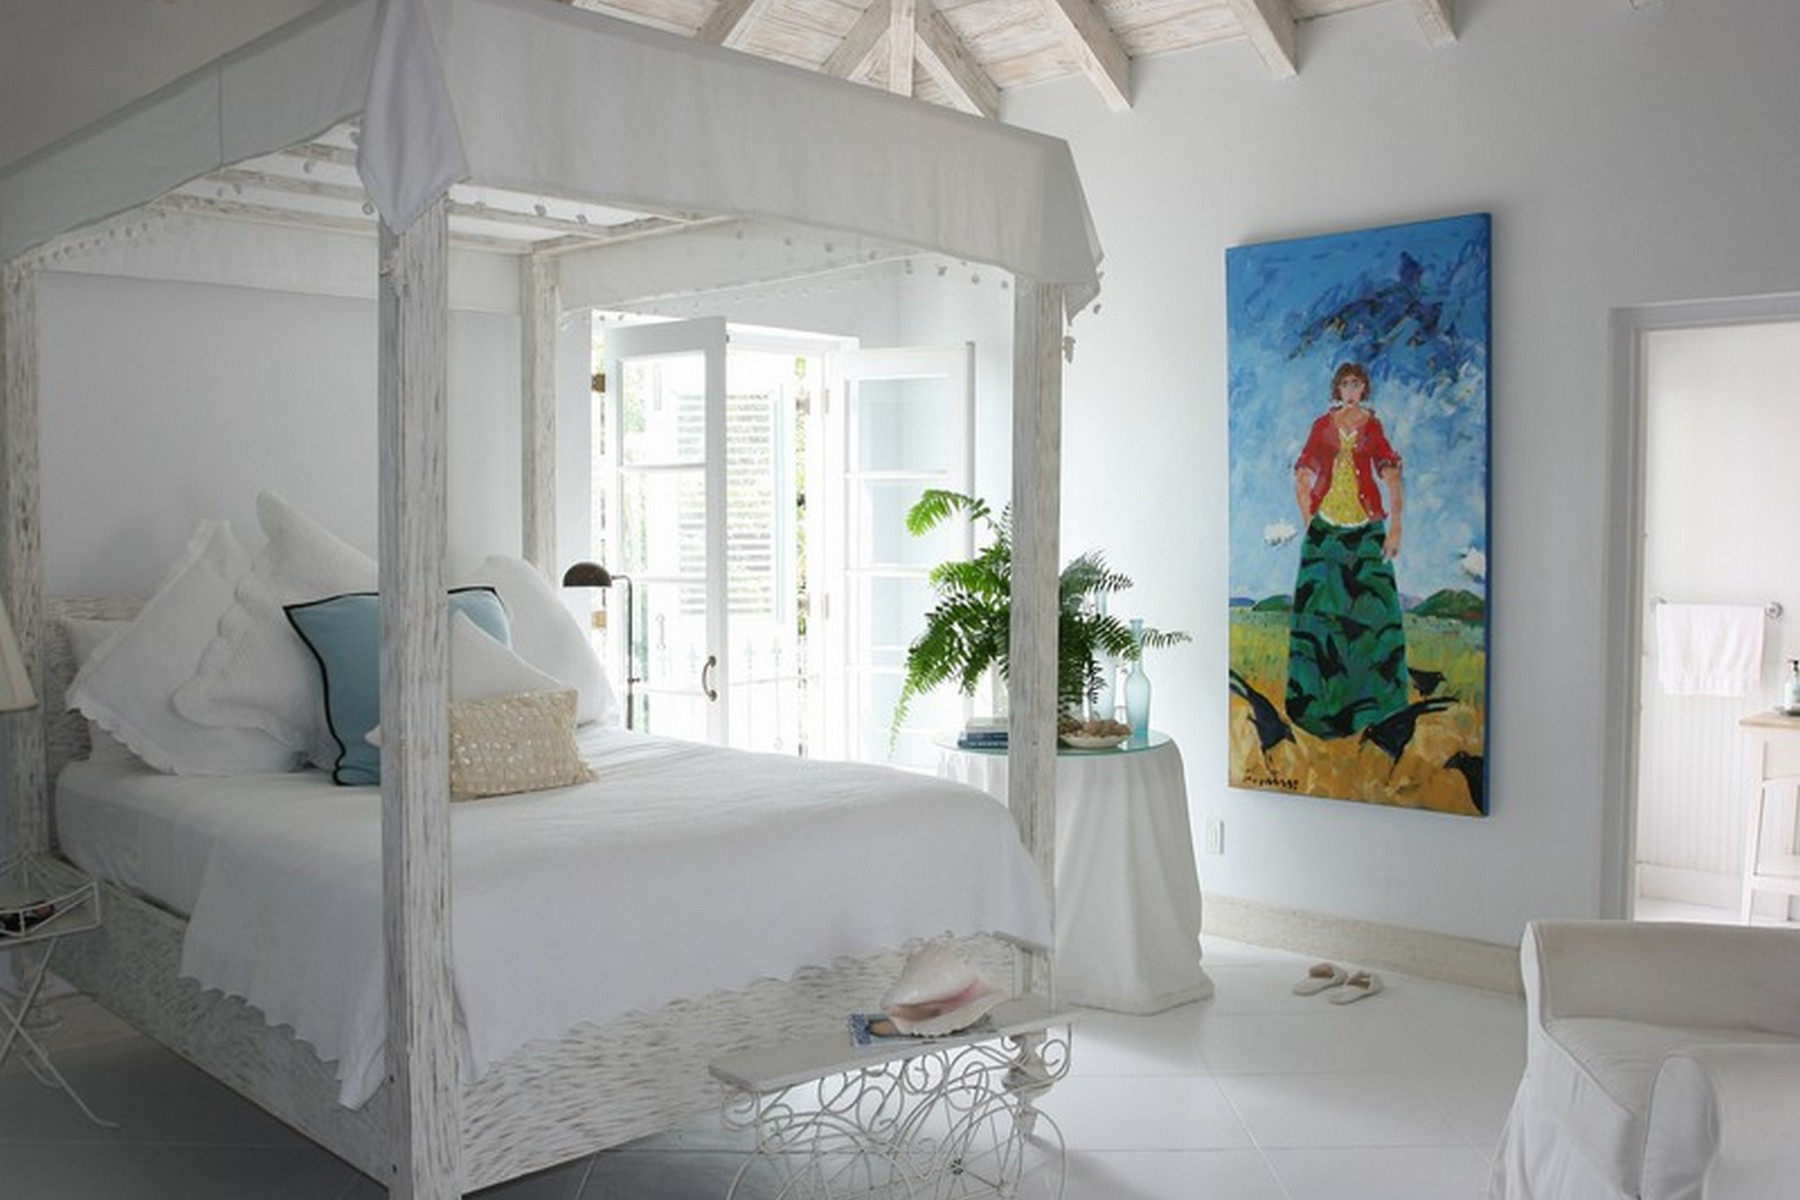 Additional photo for property listing at Coral House   Vacation Rental Beachfront Grace Bay, Провиденсьялес TCI BWI Теркс И Кайкос